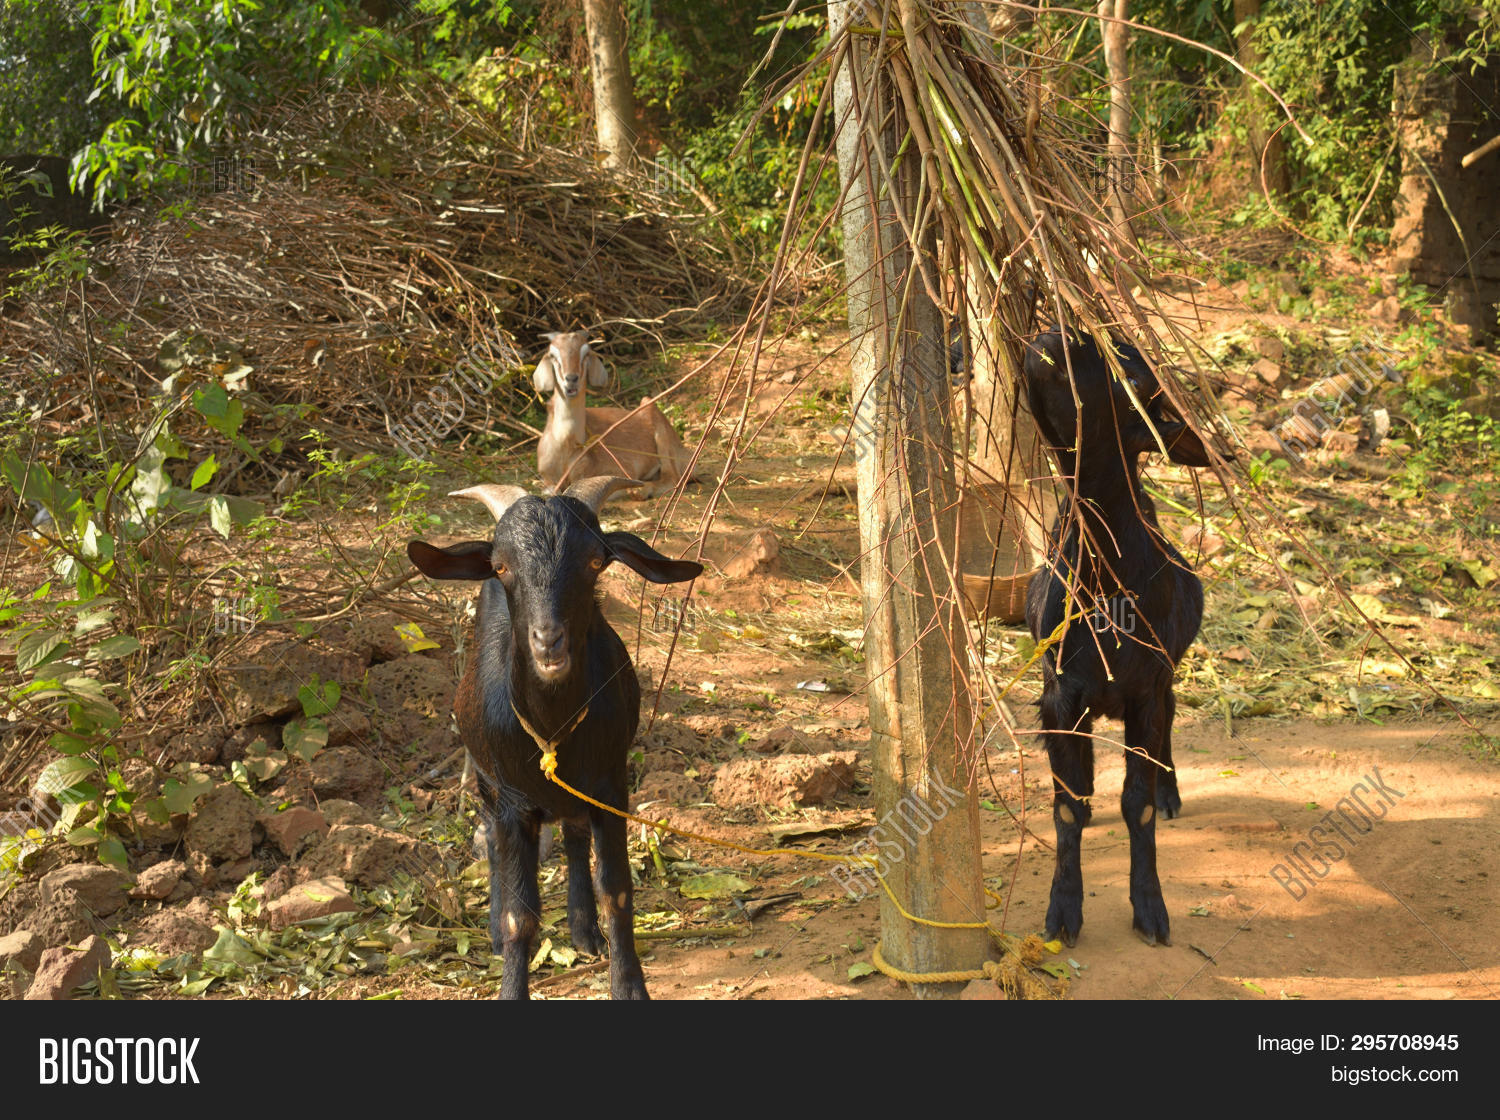 Indian Domestic Goats Image & Photo (Free Trial) | Bigstock